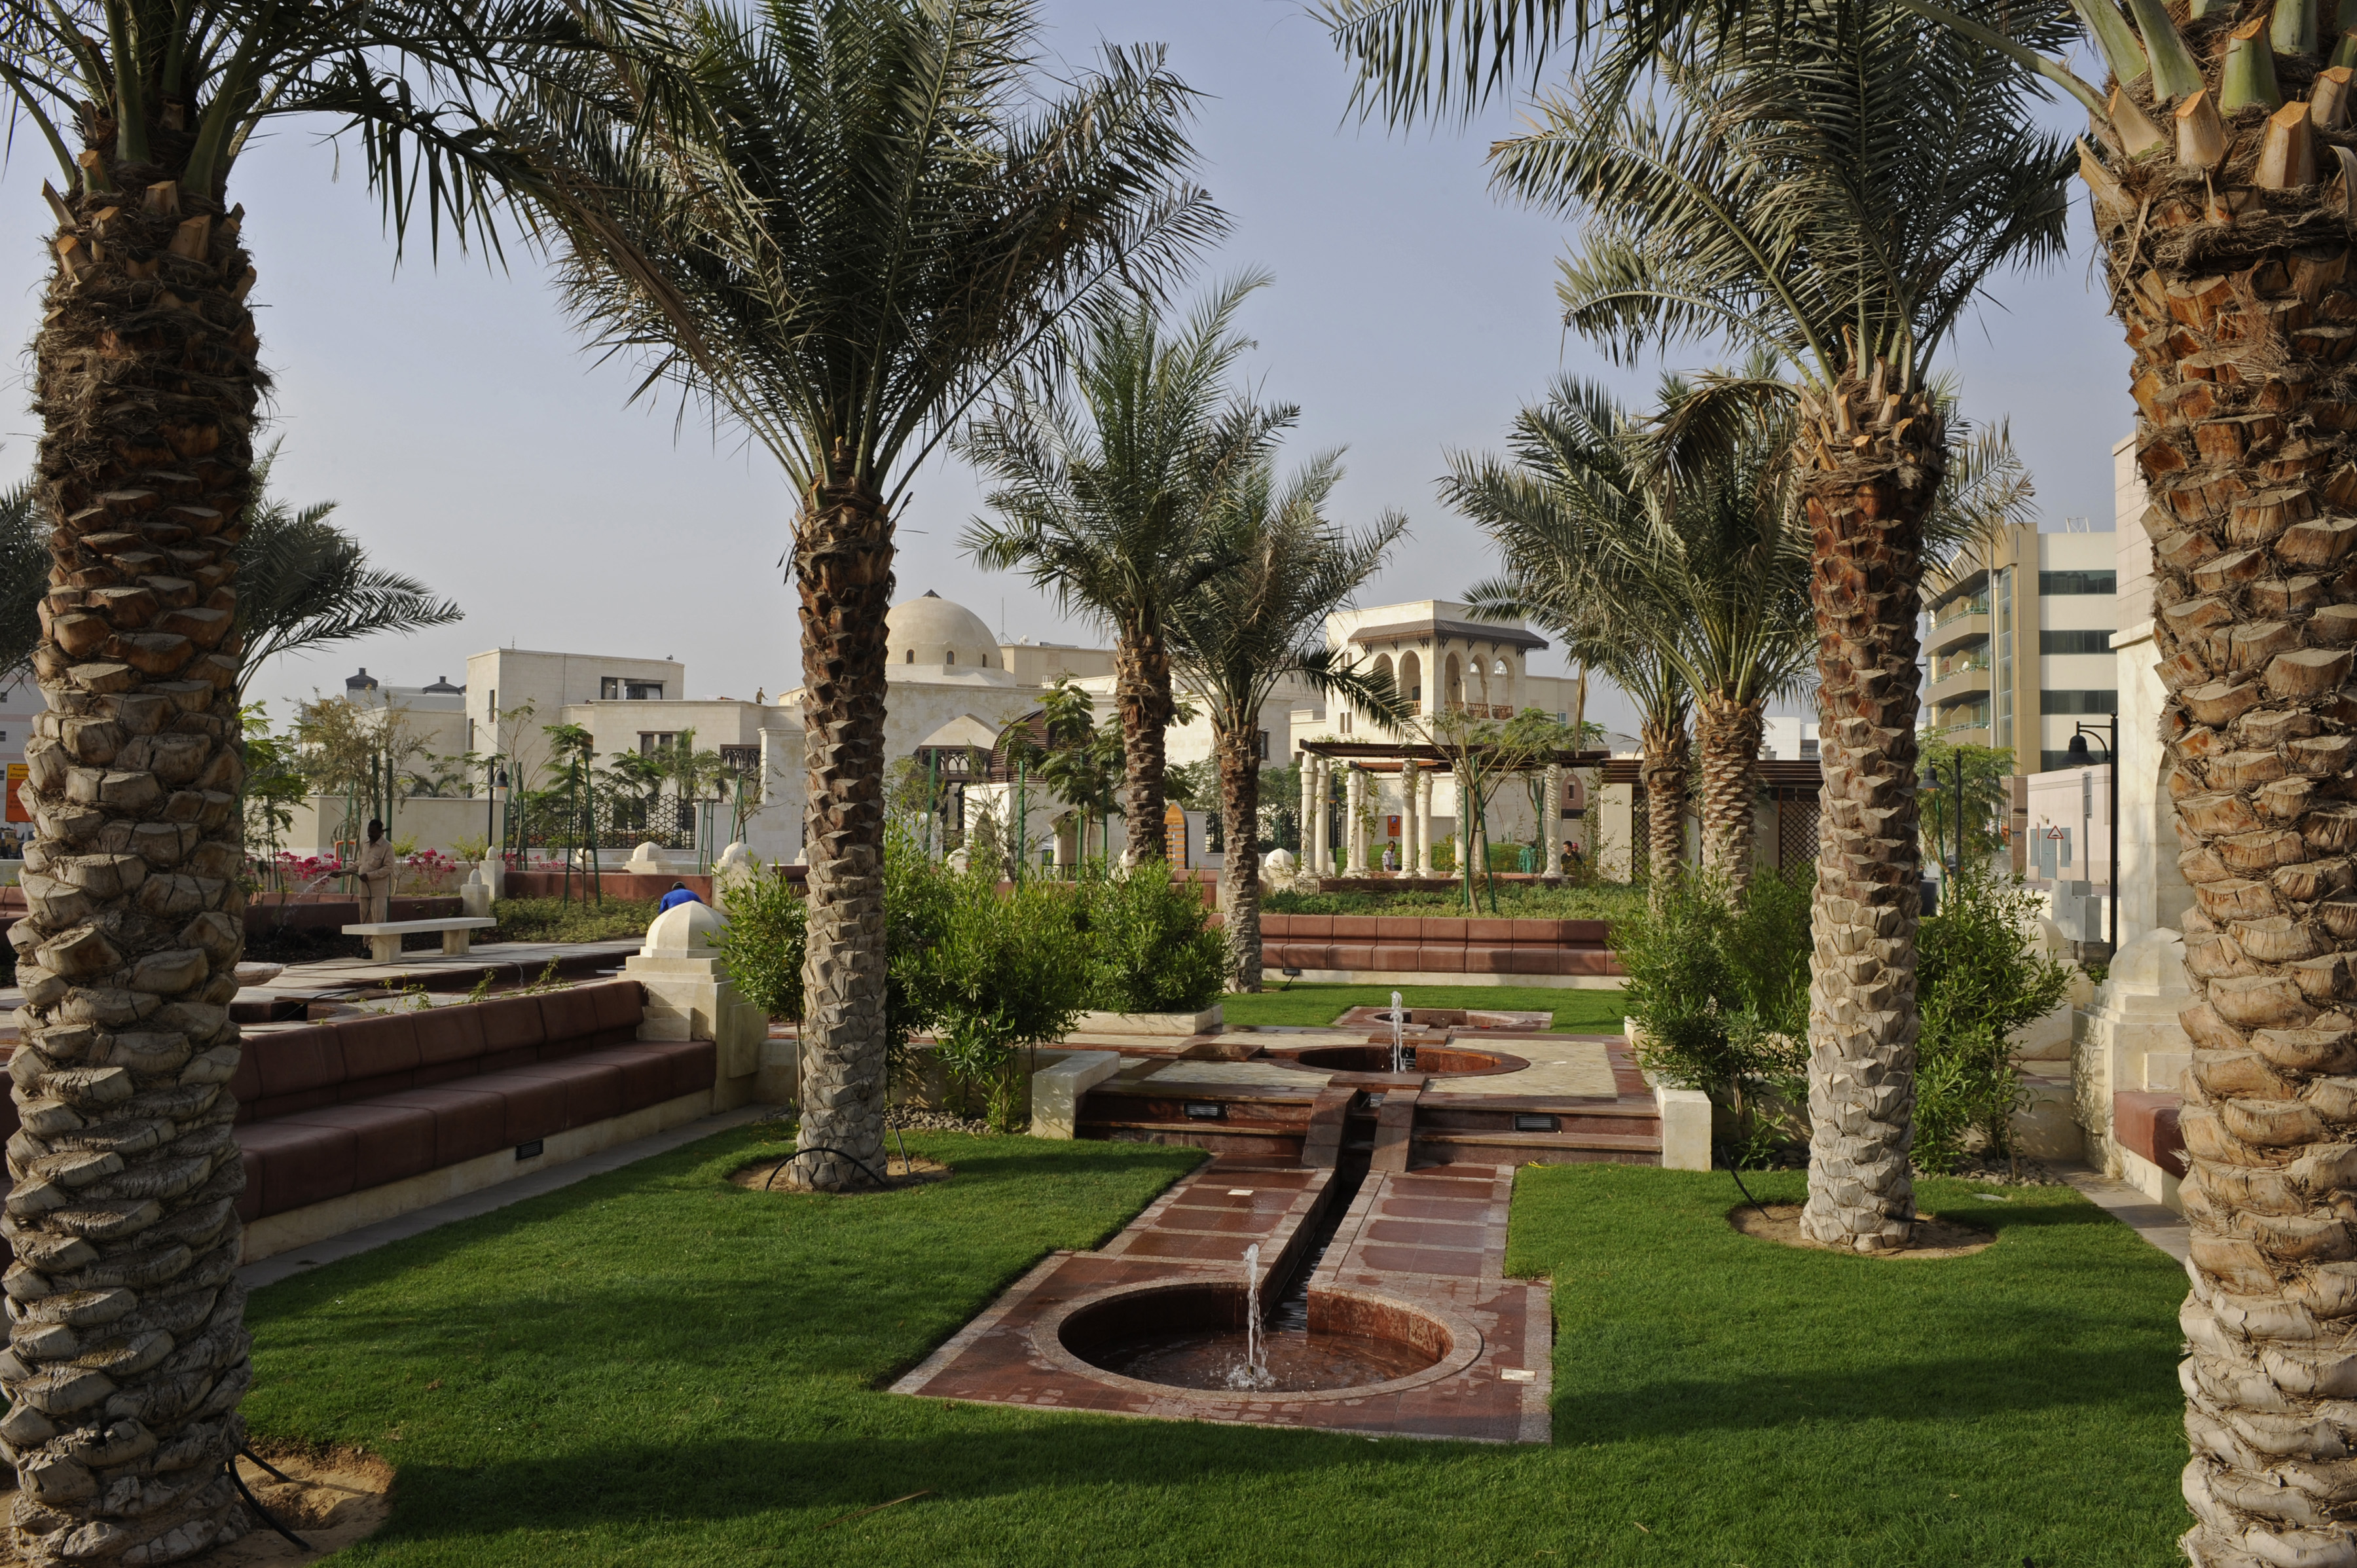 The beautiful landscaped gardens in a serene setting reflect an Islamic tradition. Photo: Gary Otte